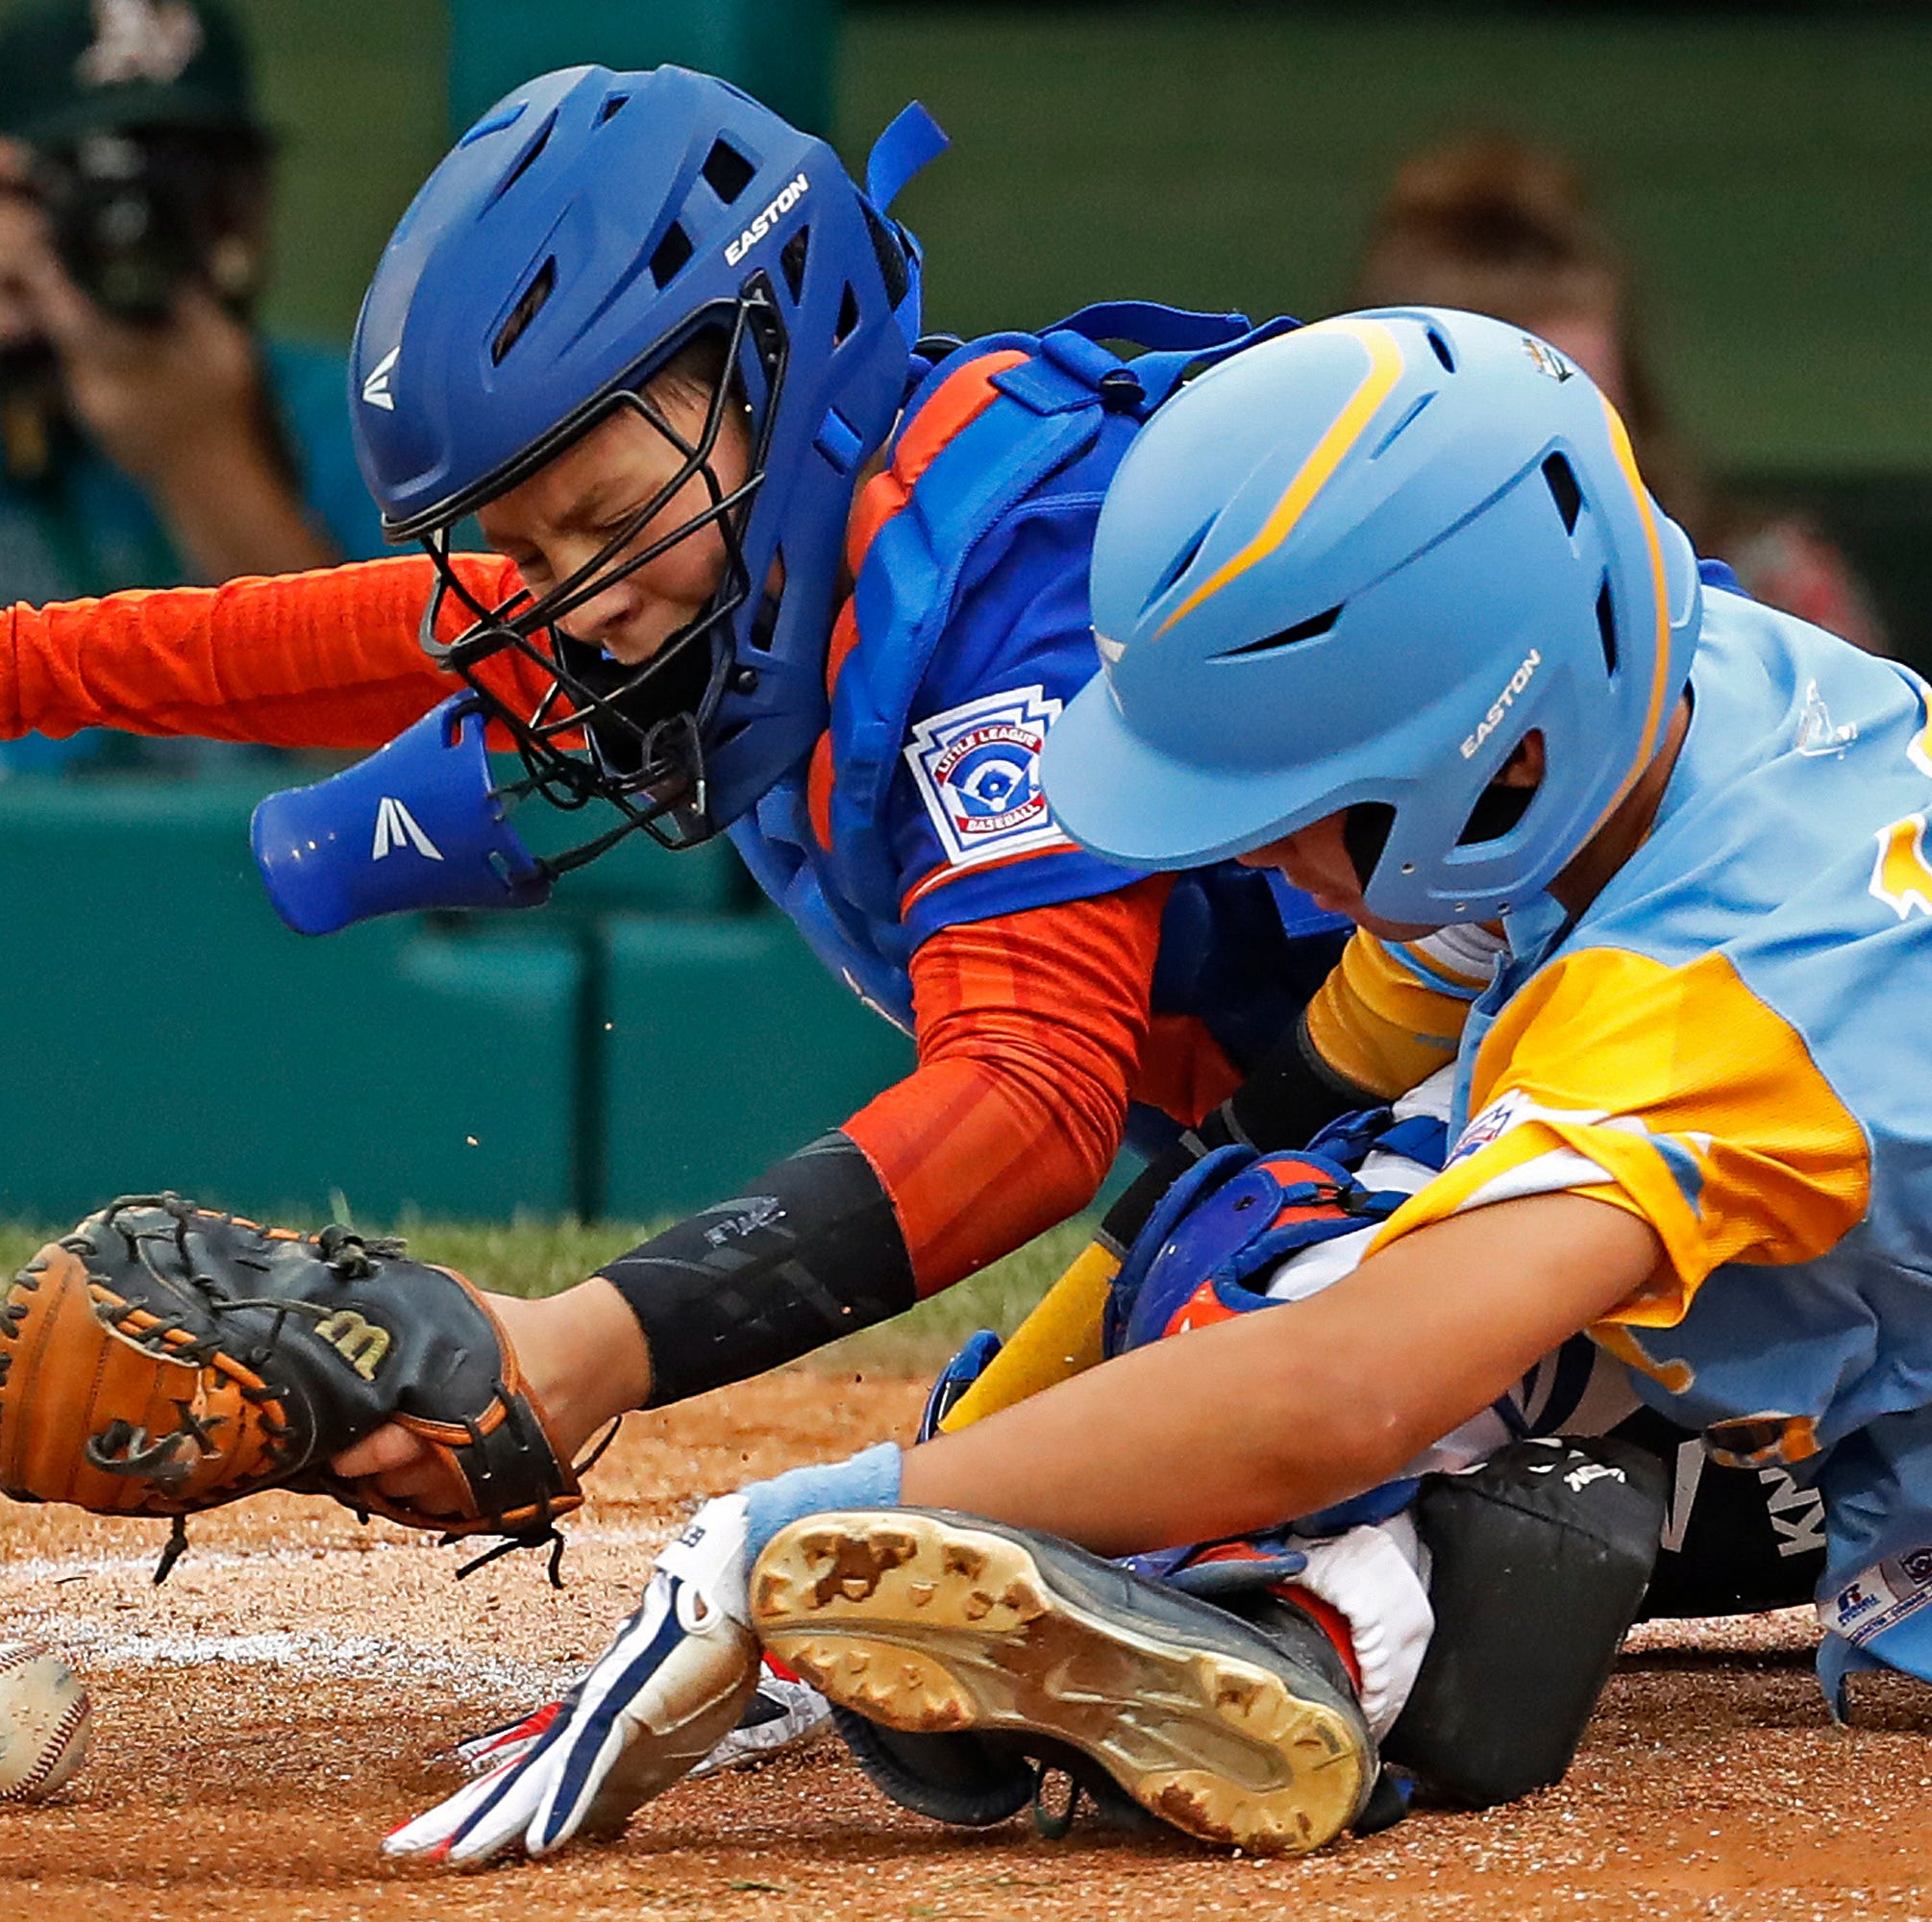 Too wild: Grosse Pointe no match for Hawaii in Little League World Series